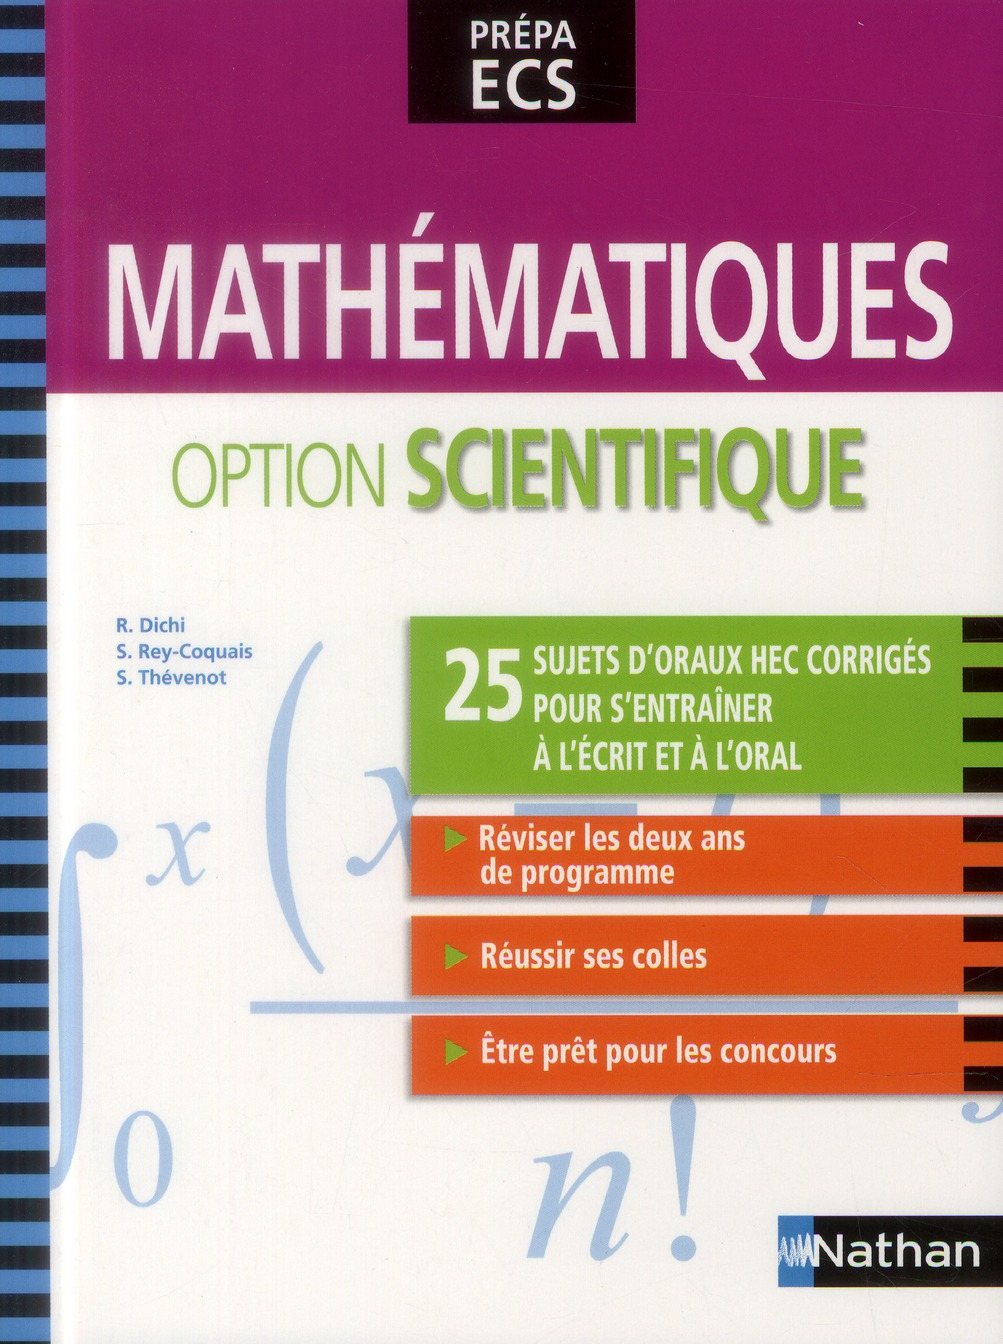 Mathematiques ; Option Scientifique ; Prepa Ecs (Edition 2013)